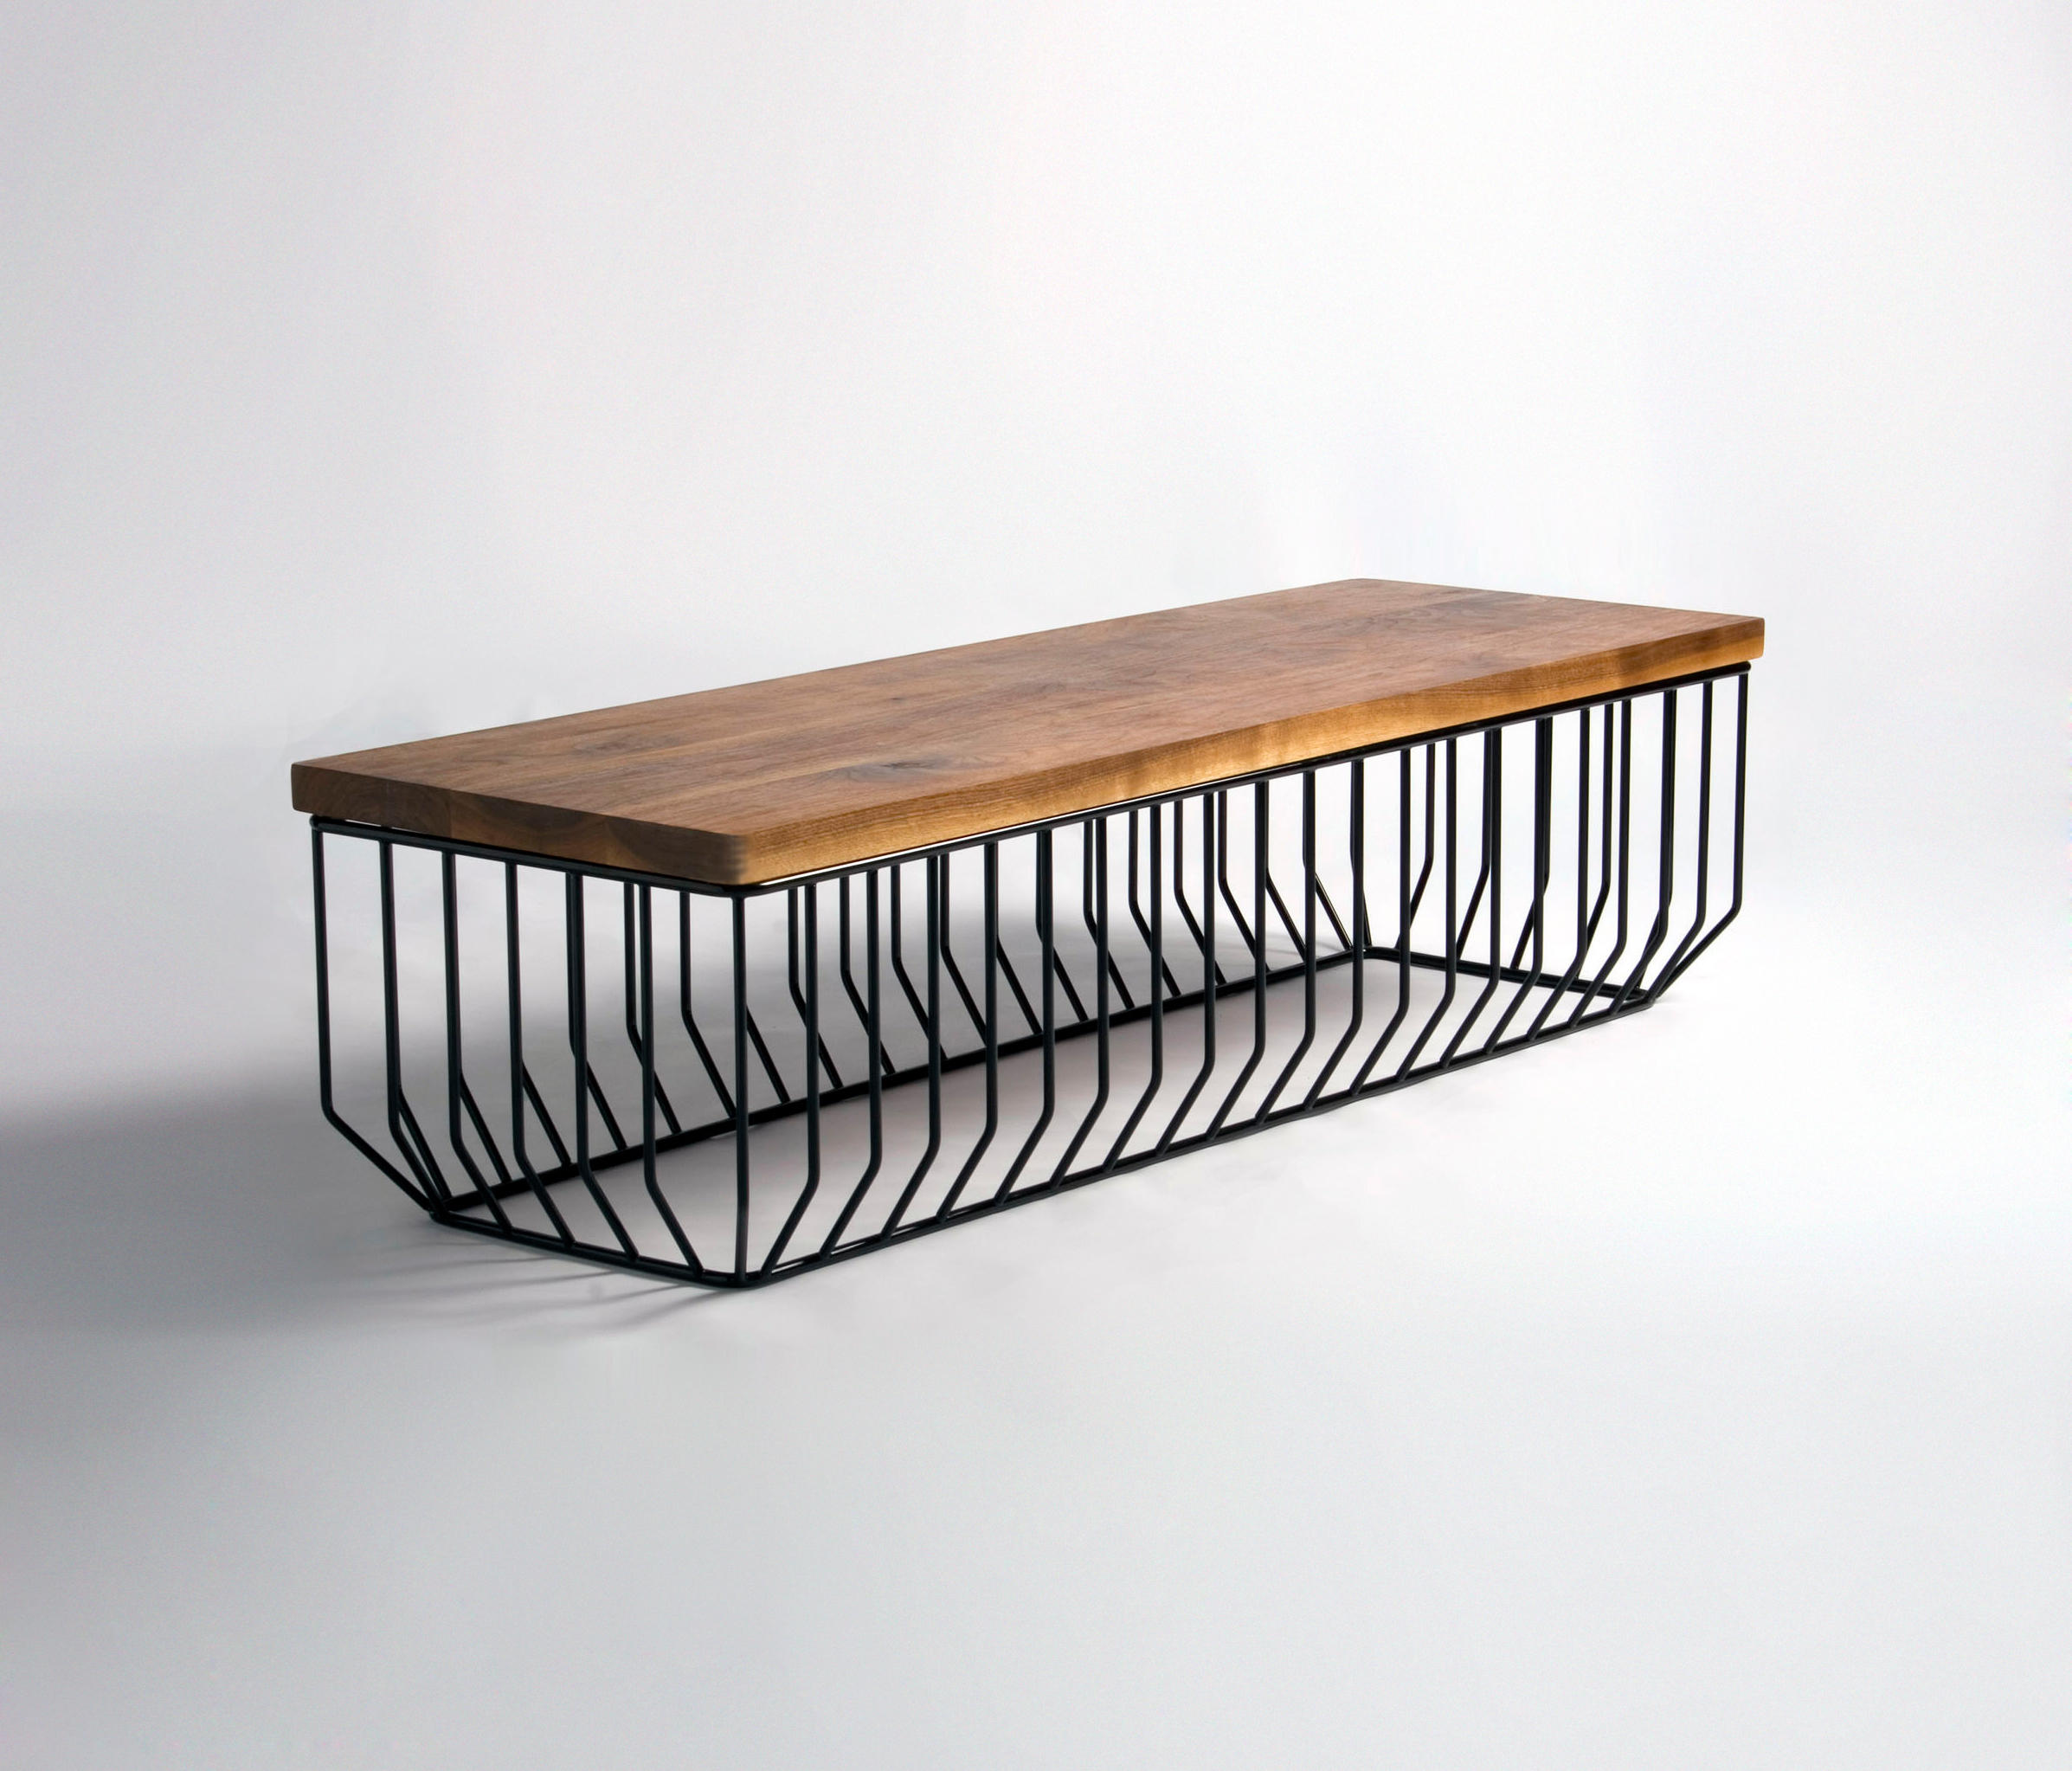 WIRED BENCH - Waiting area benches from Phase Design | Architonic